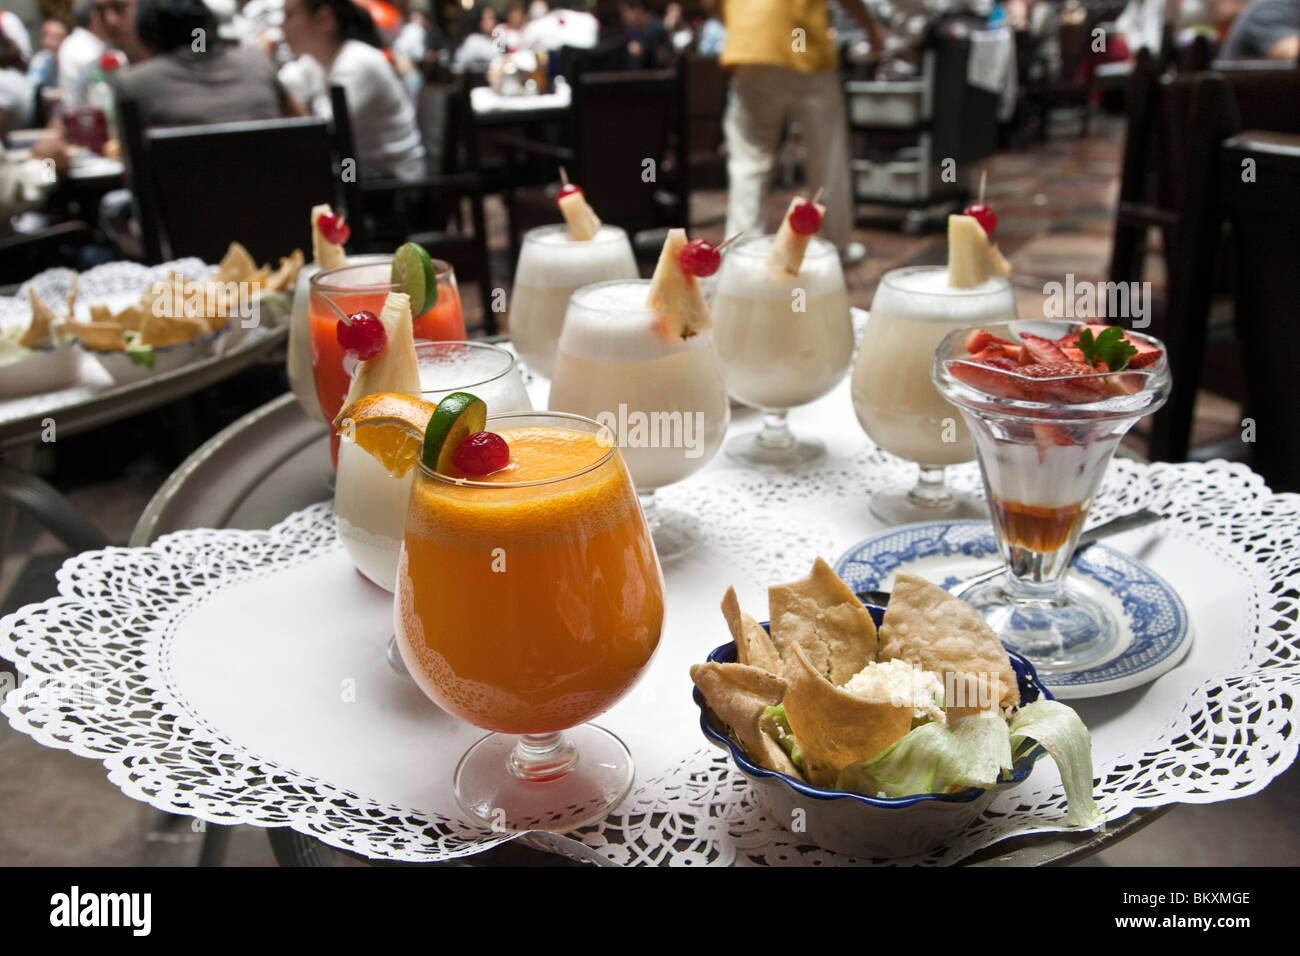 tray of delicious starter non alcoholic beverages and guacamole appetizer waiting for diners at Sanborns House of - Stock Image